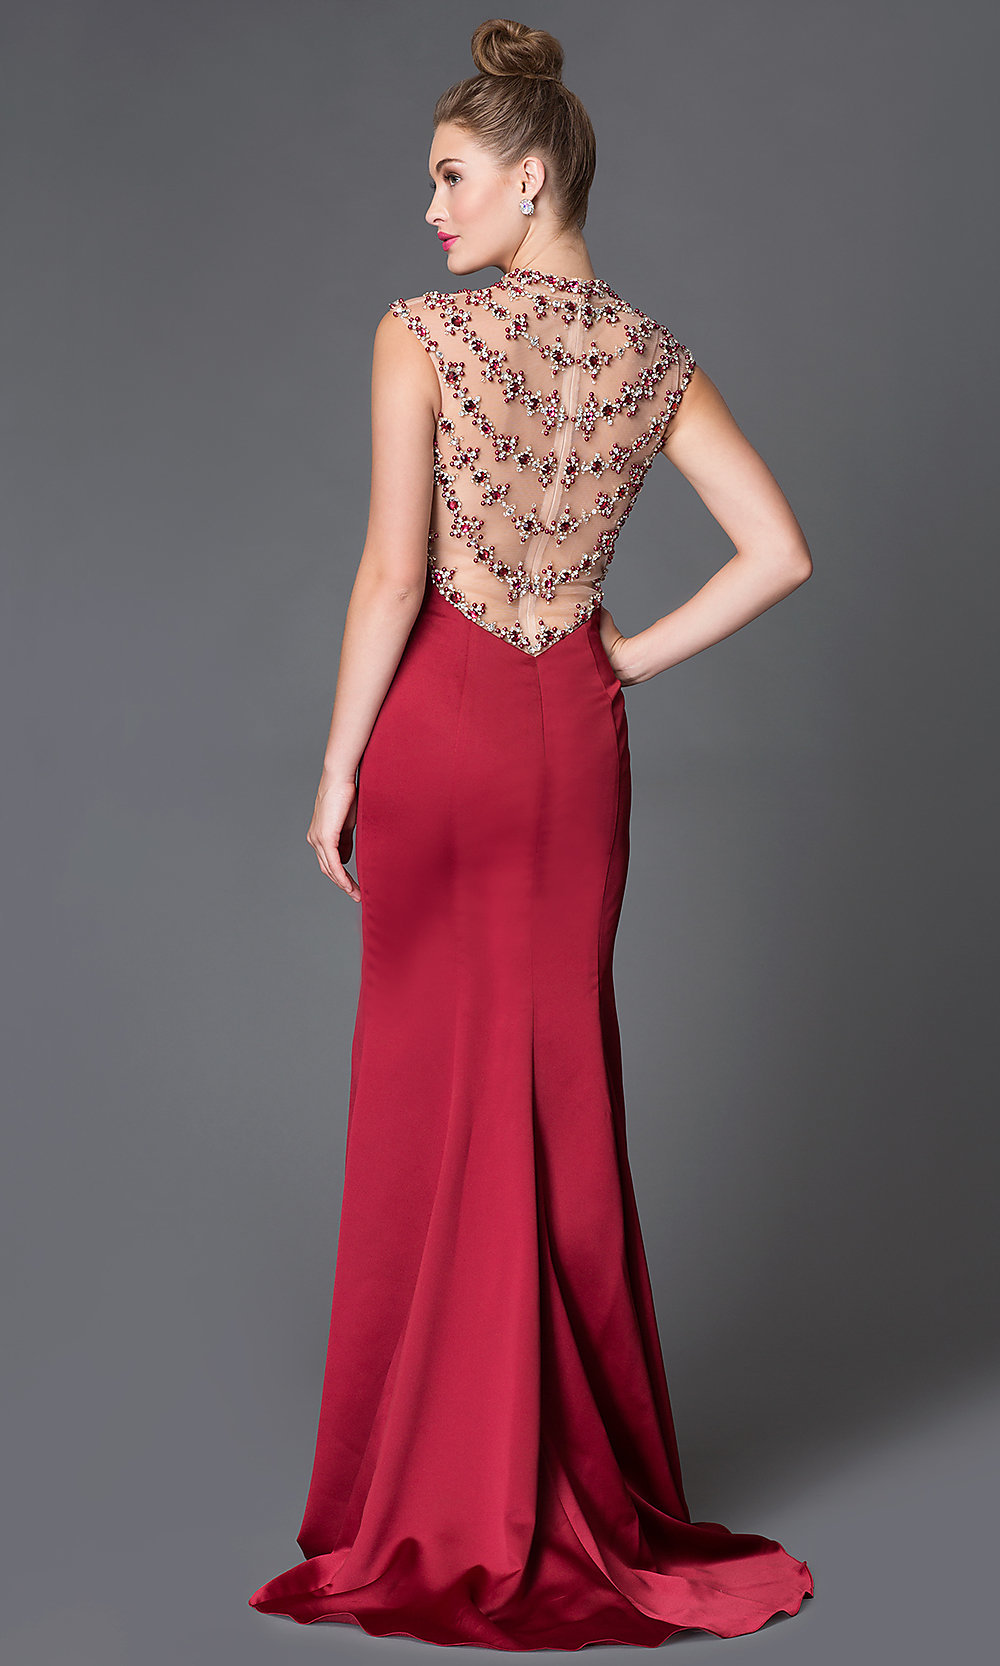 Illusion Back Floor Length Xcite Prom Dress